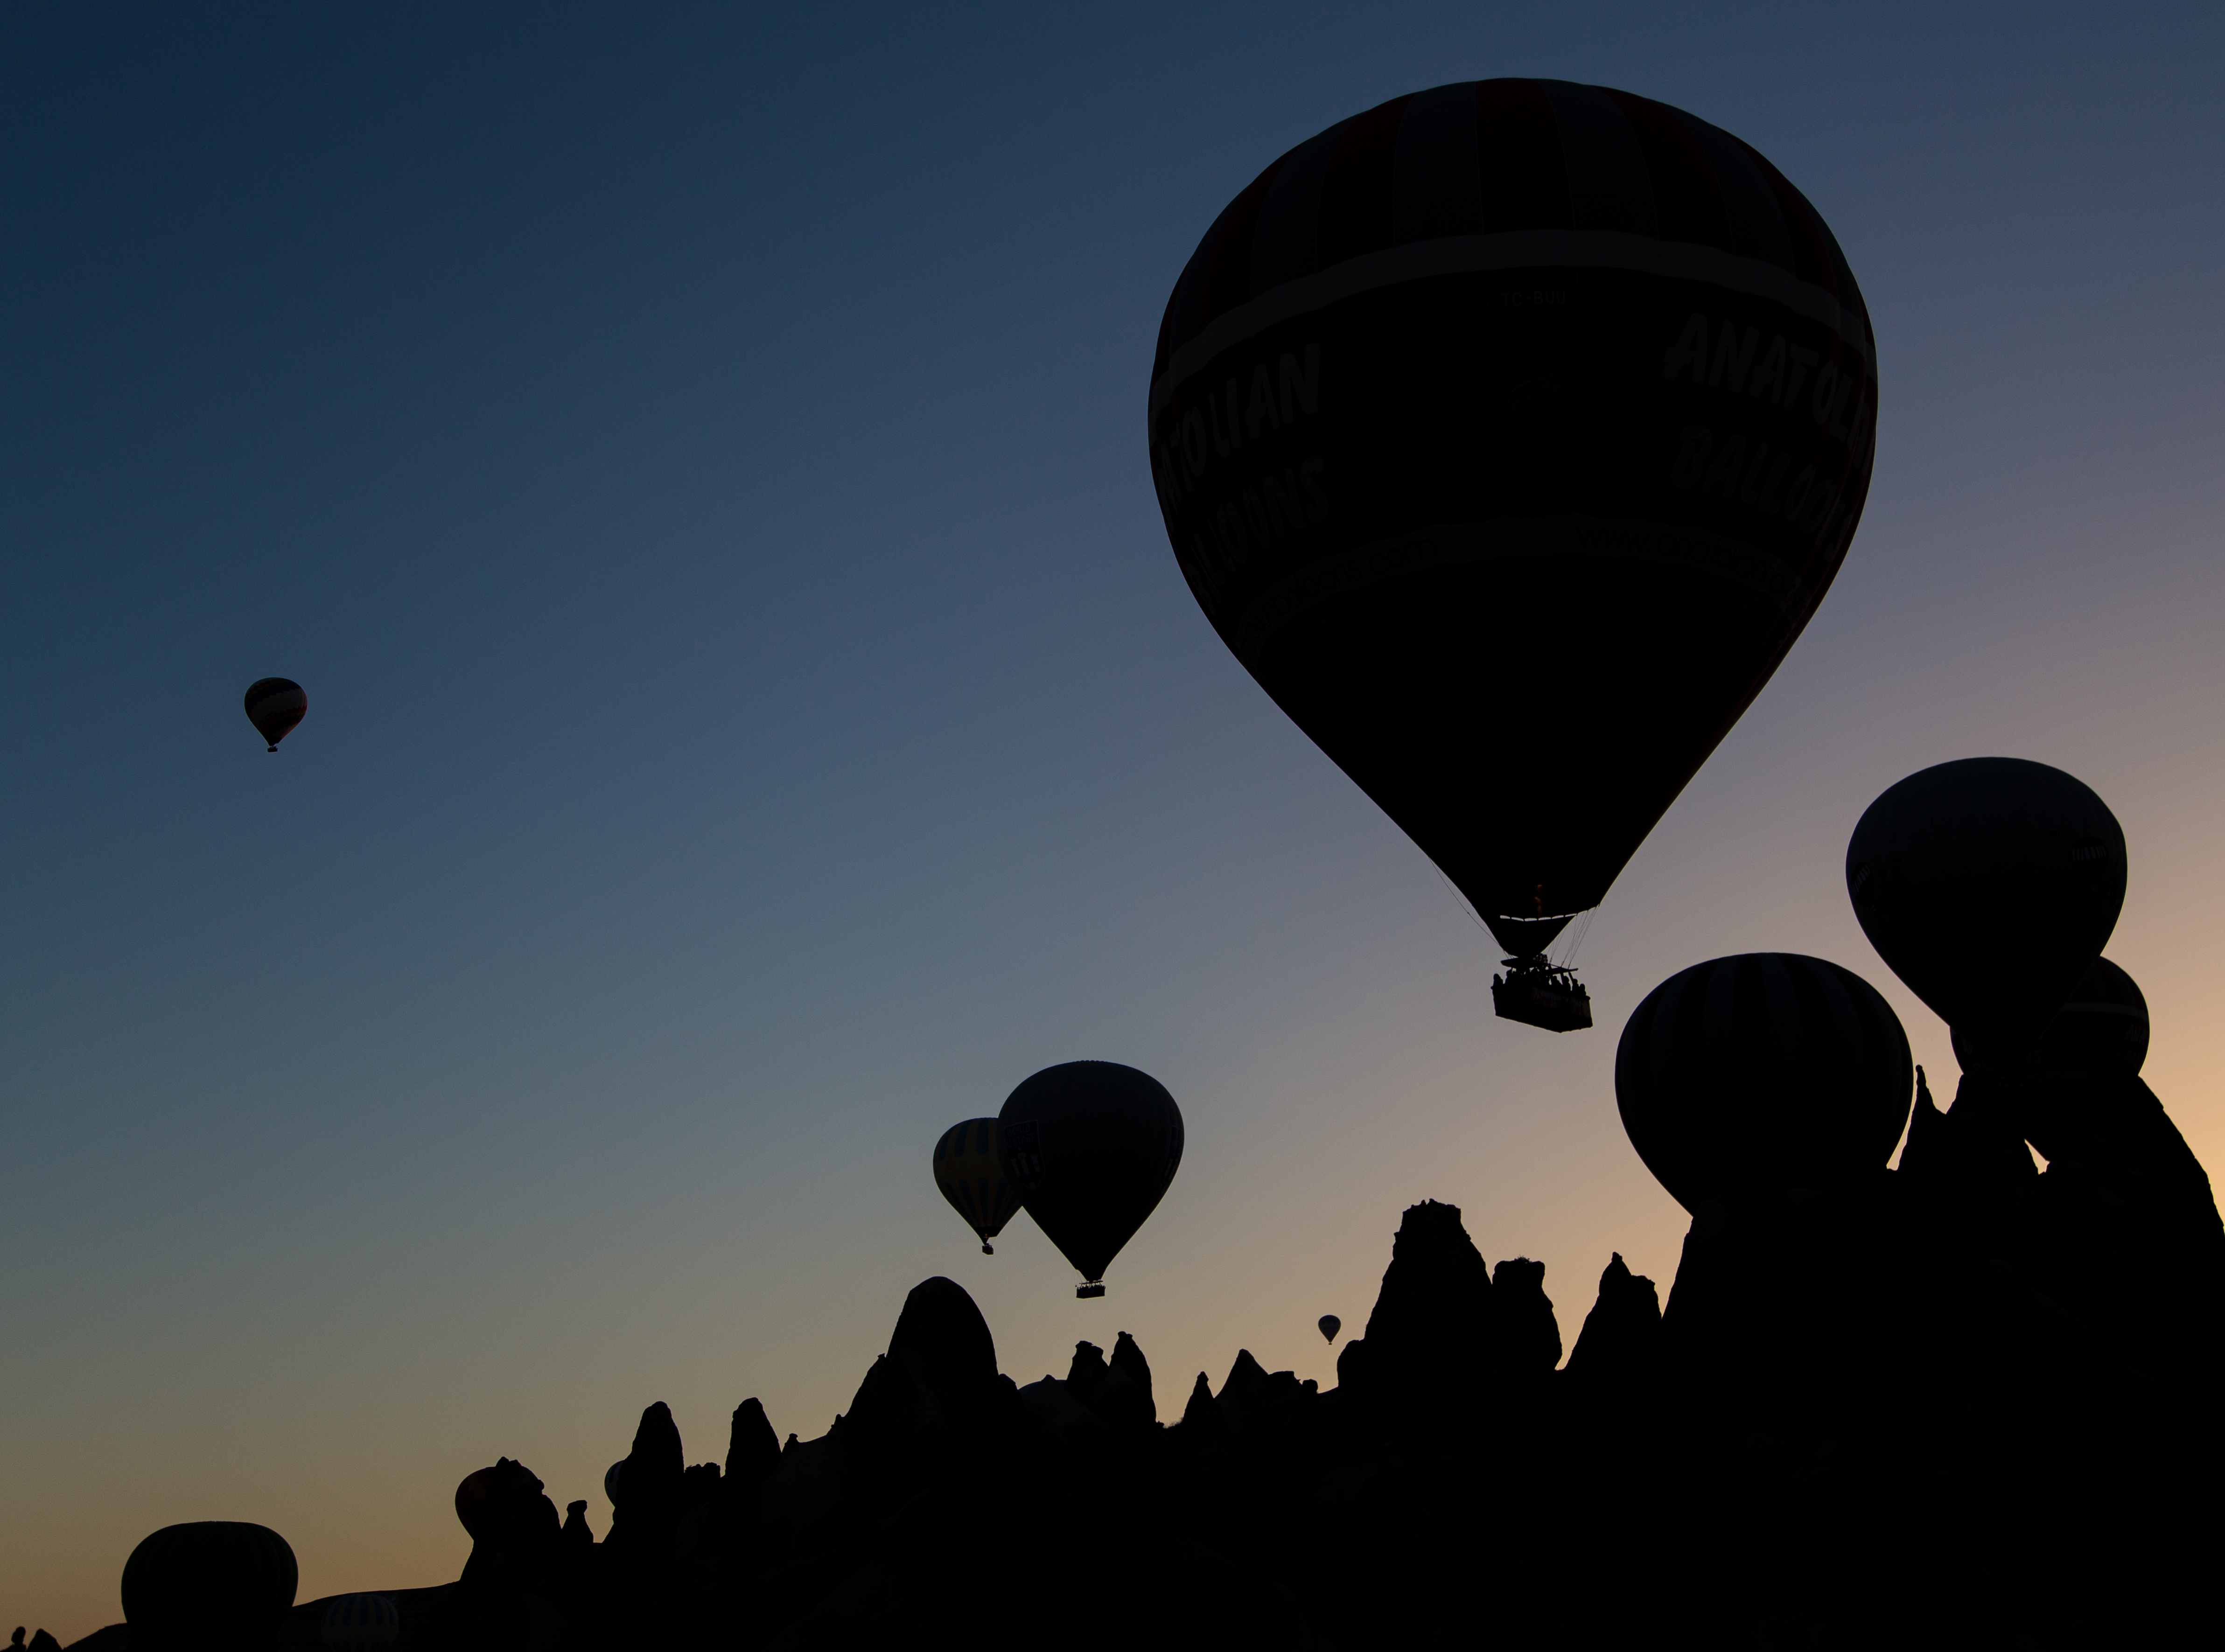 Ballooning Silhouette